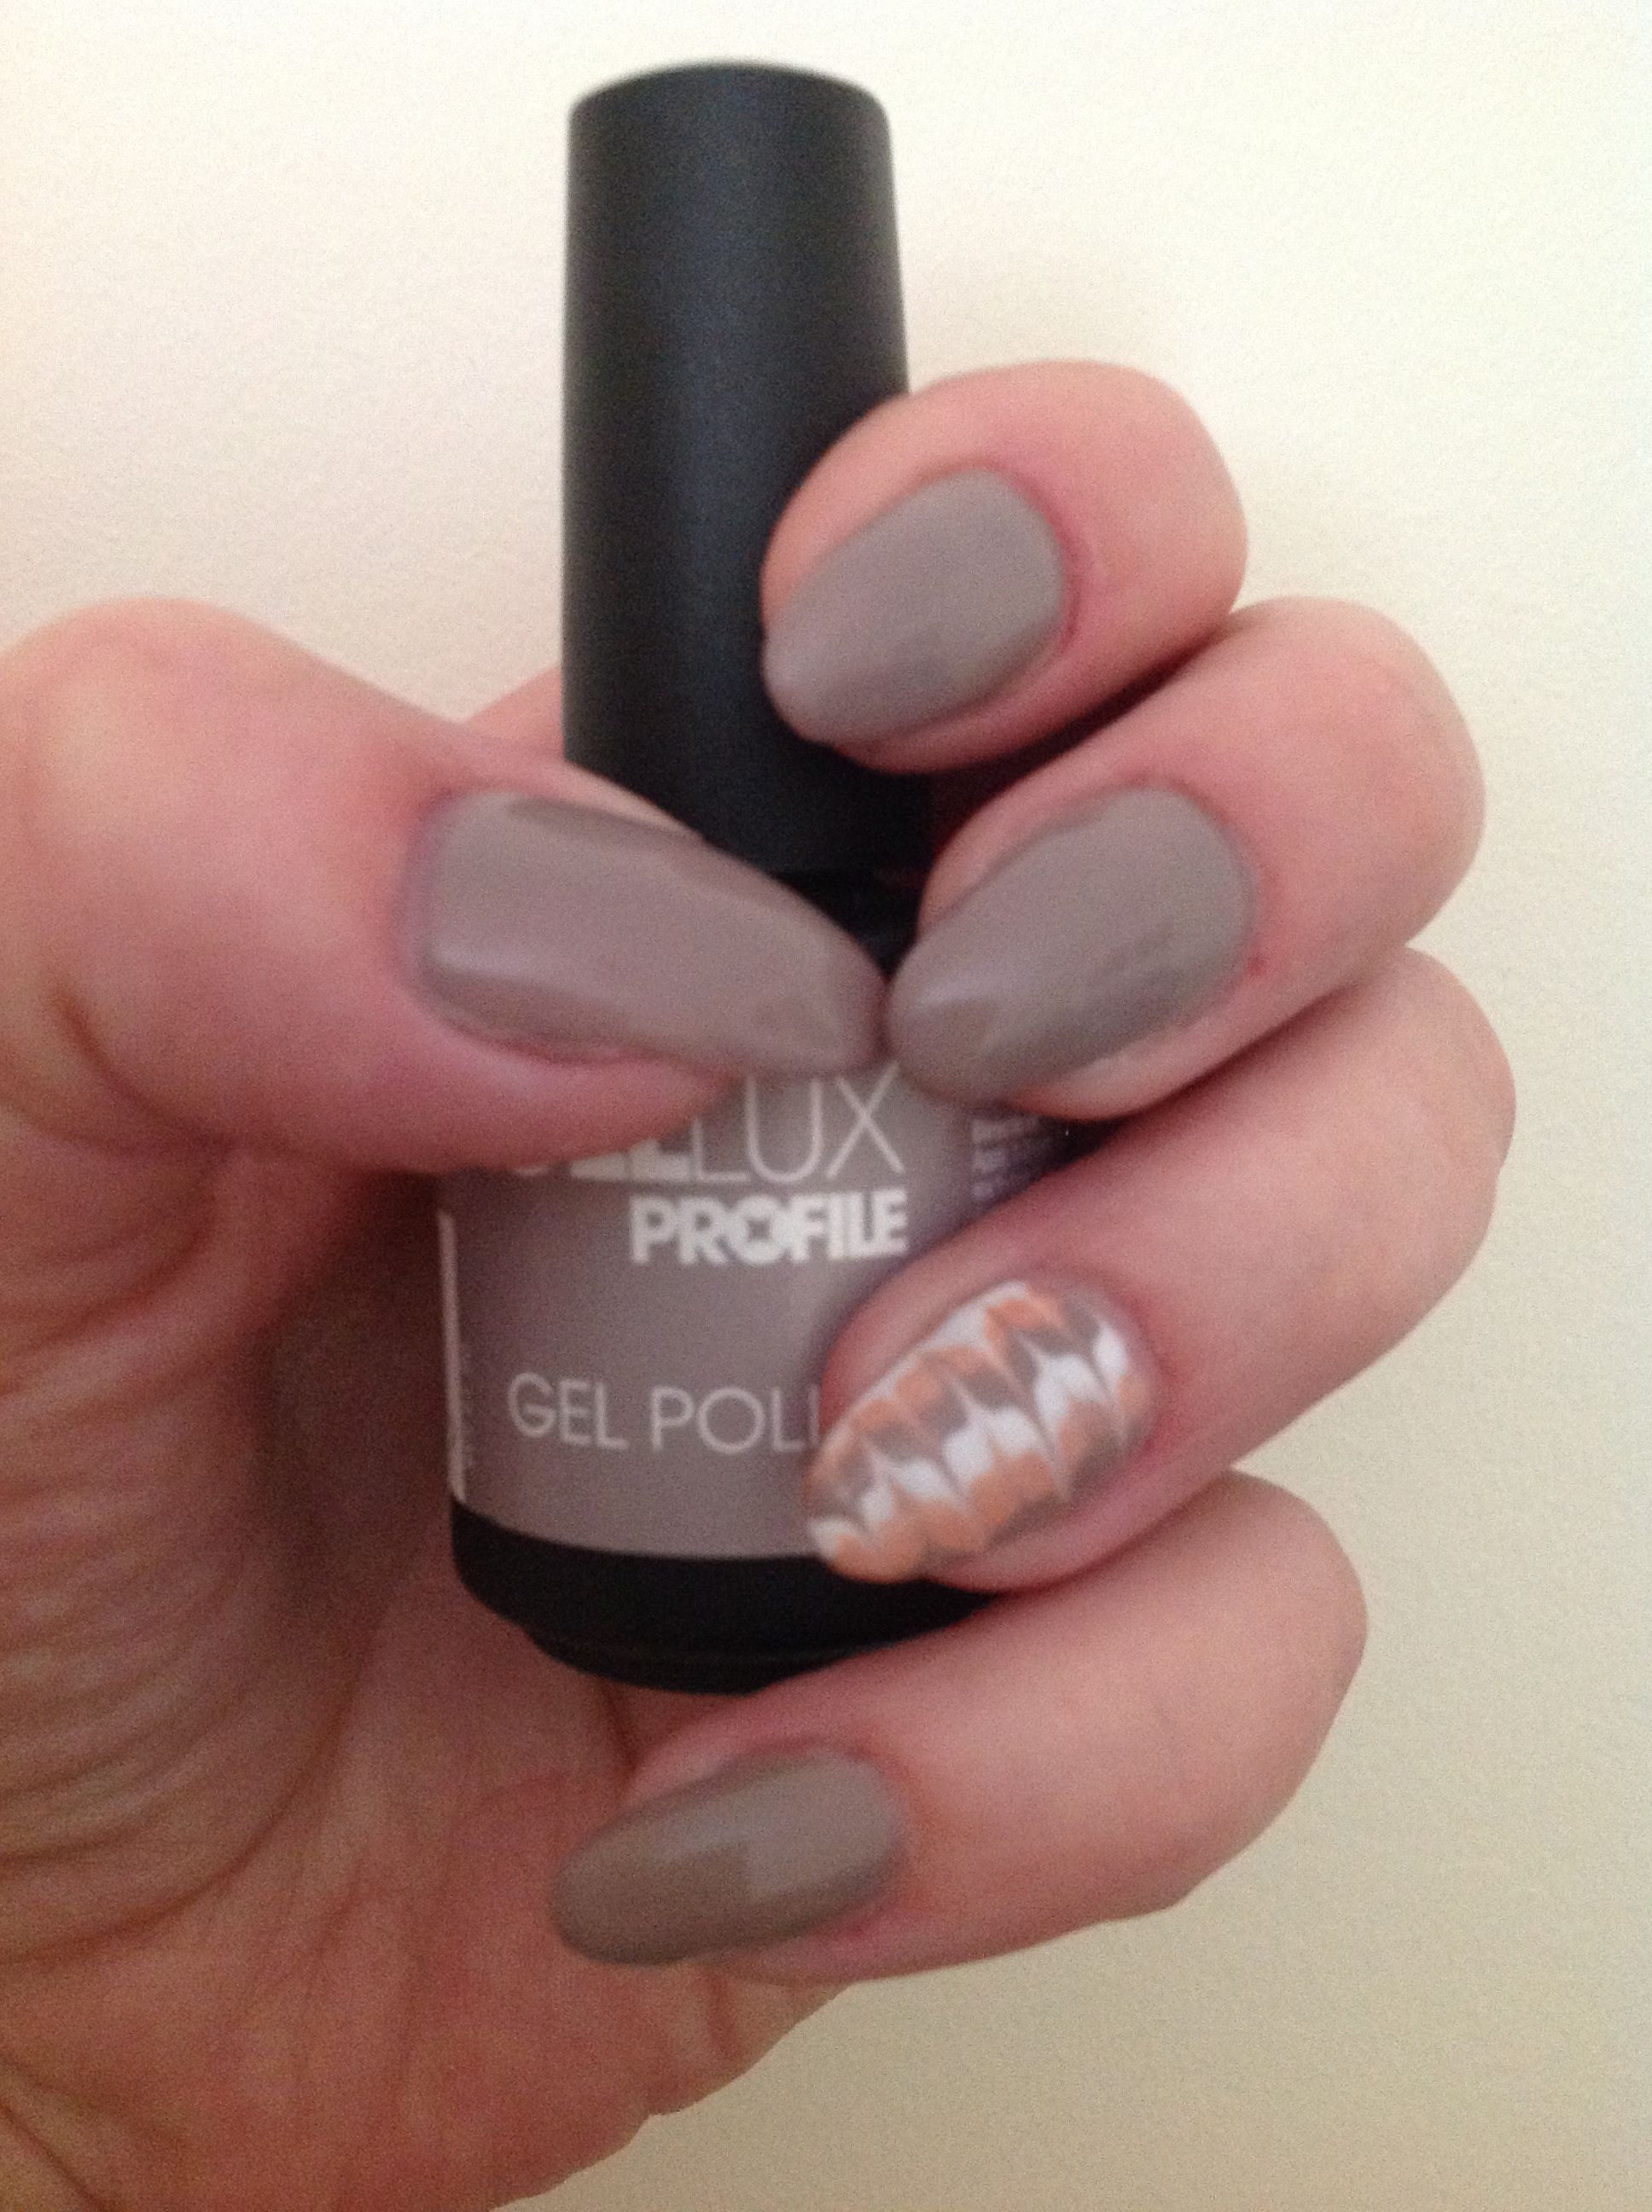 Gellux Blending #gellux #wildmink | Nails | Pinterest | La nails